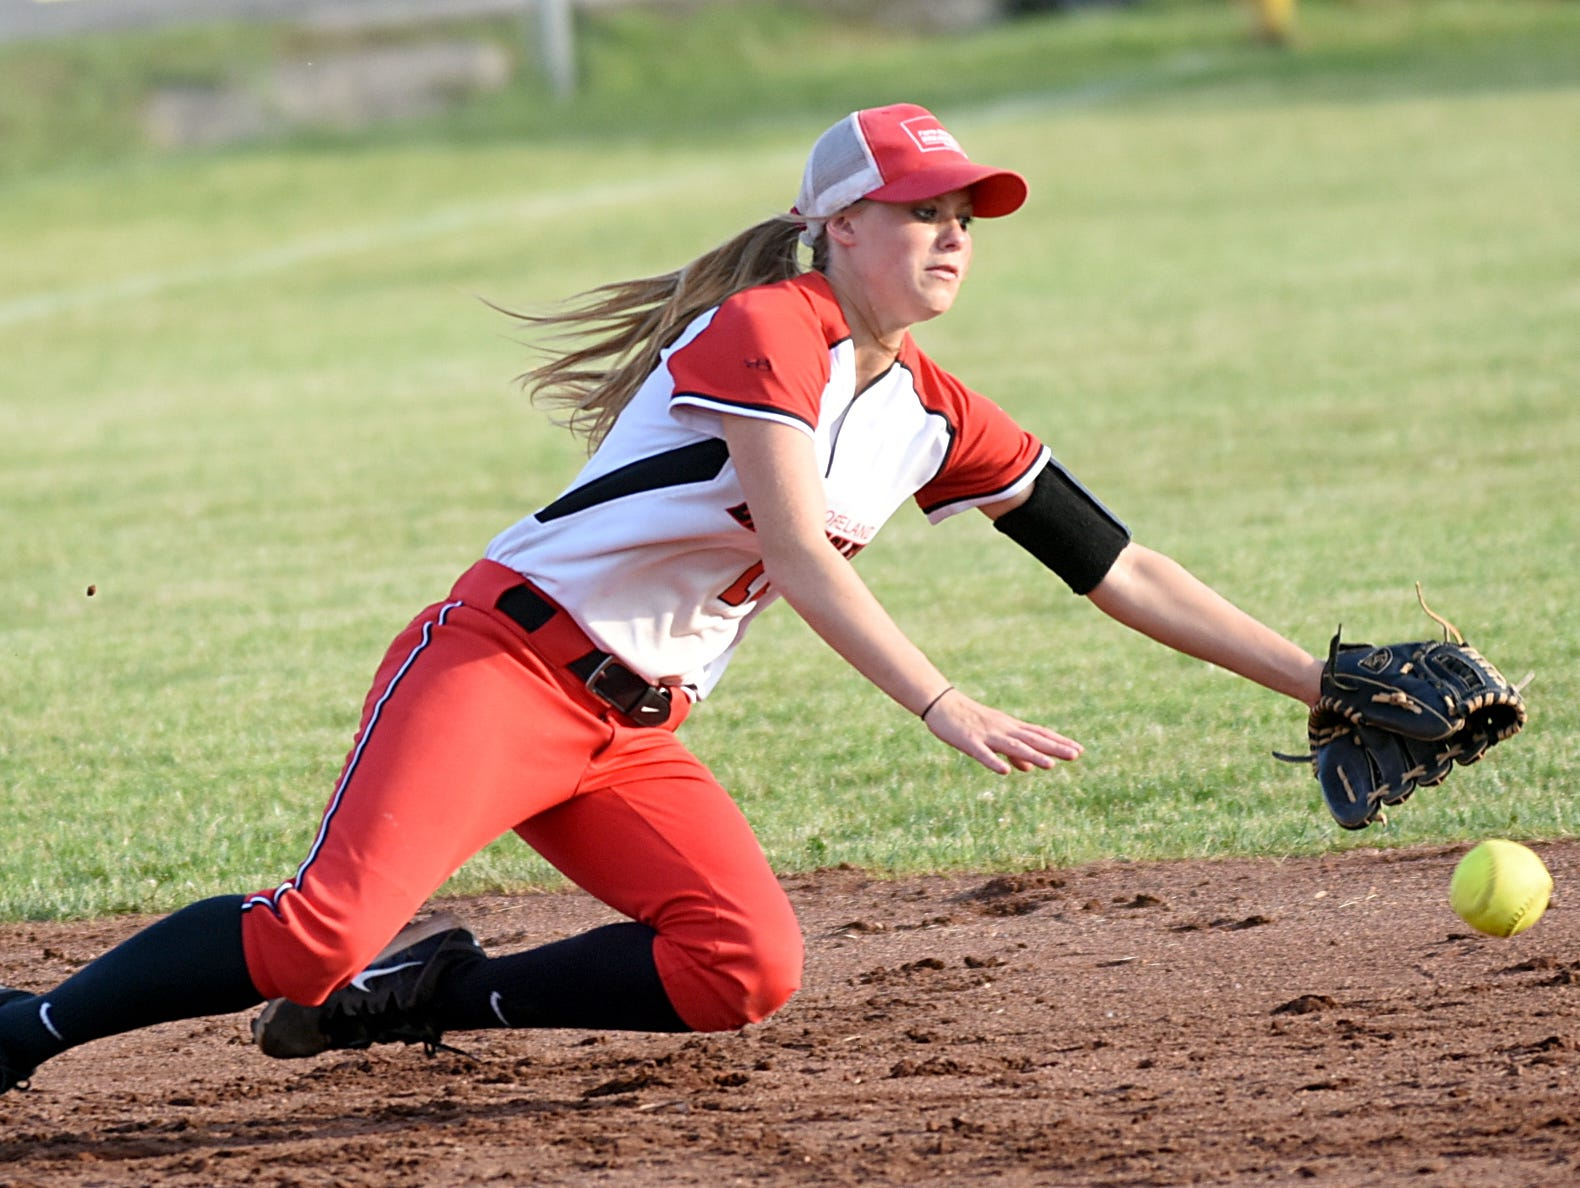 Westmoreland High junior shortstop Savannah Whiticker makes a diving attempt to catch a ground ball up the middle.